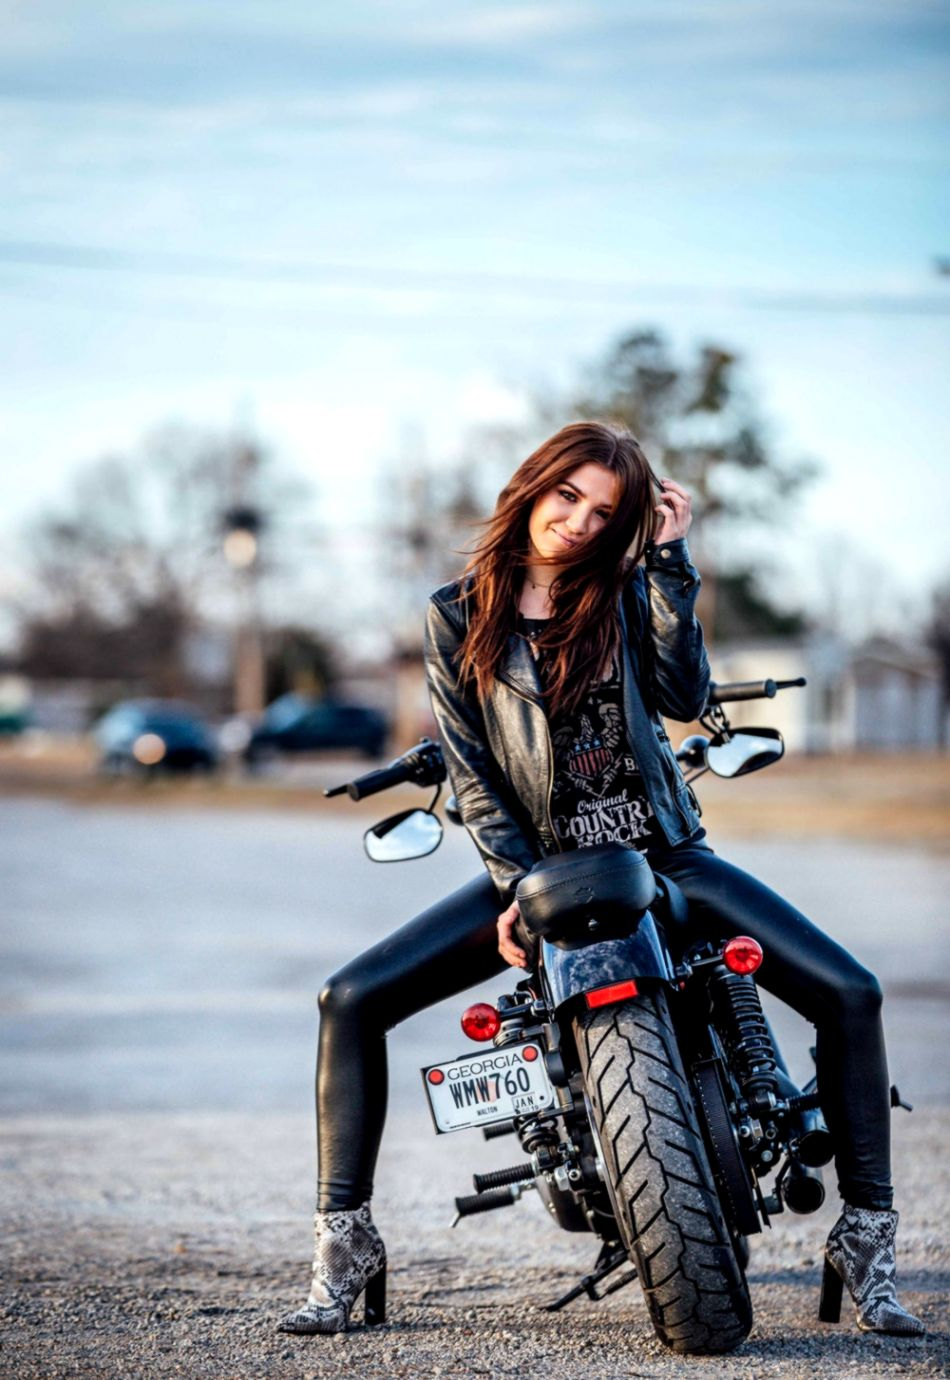 Fashion Motorcycle Girl Wallpaper   Wallpapers Library